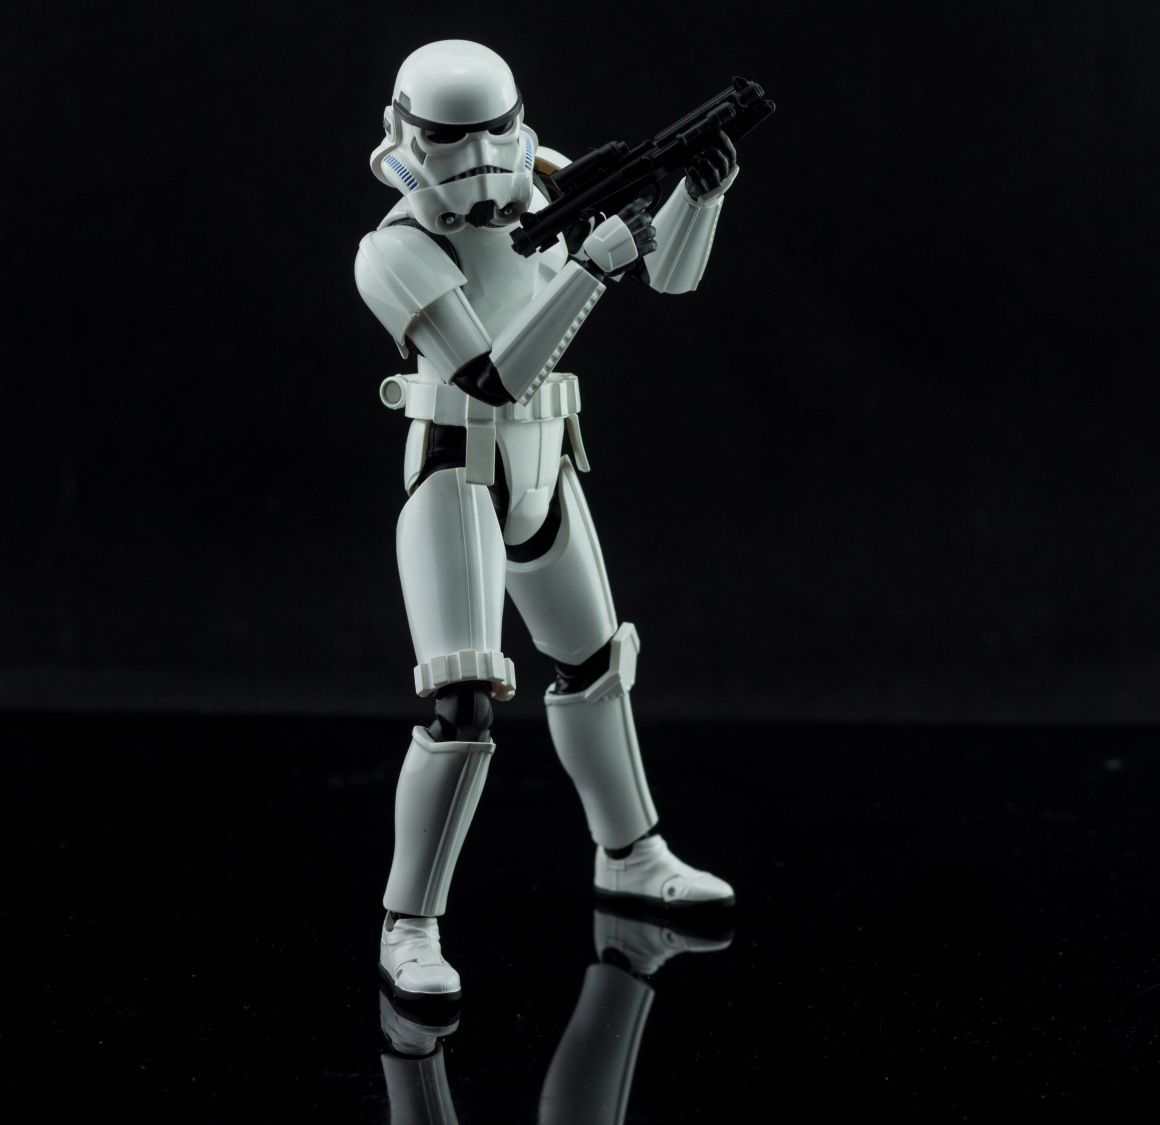 S.H. Figuarts Rogue One Stormtrooper